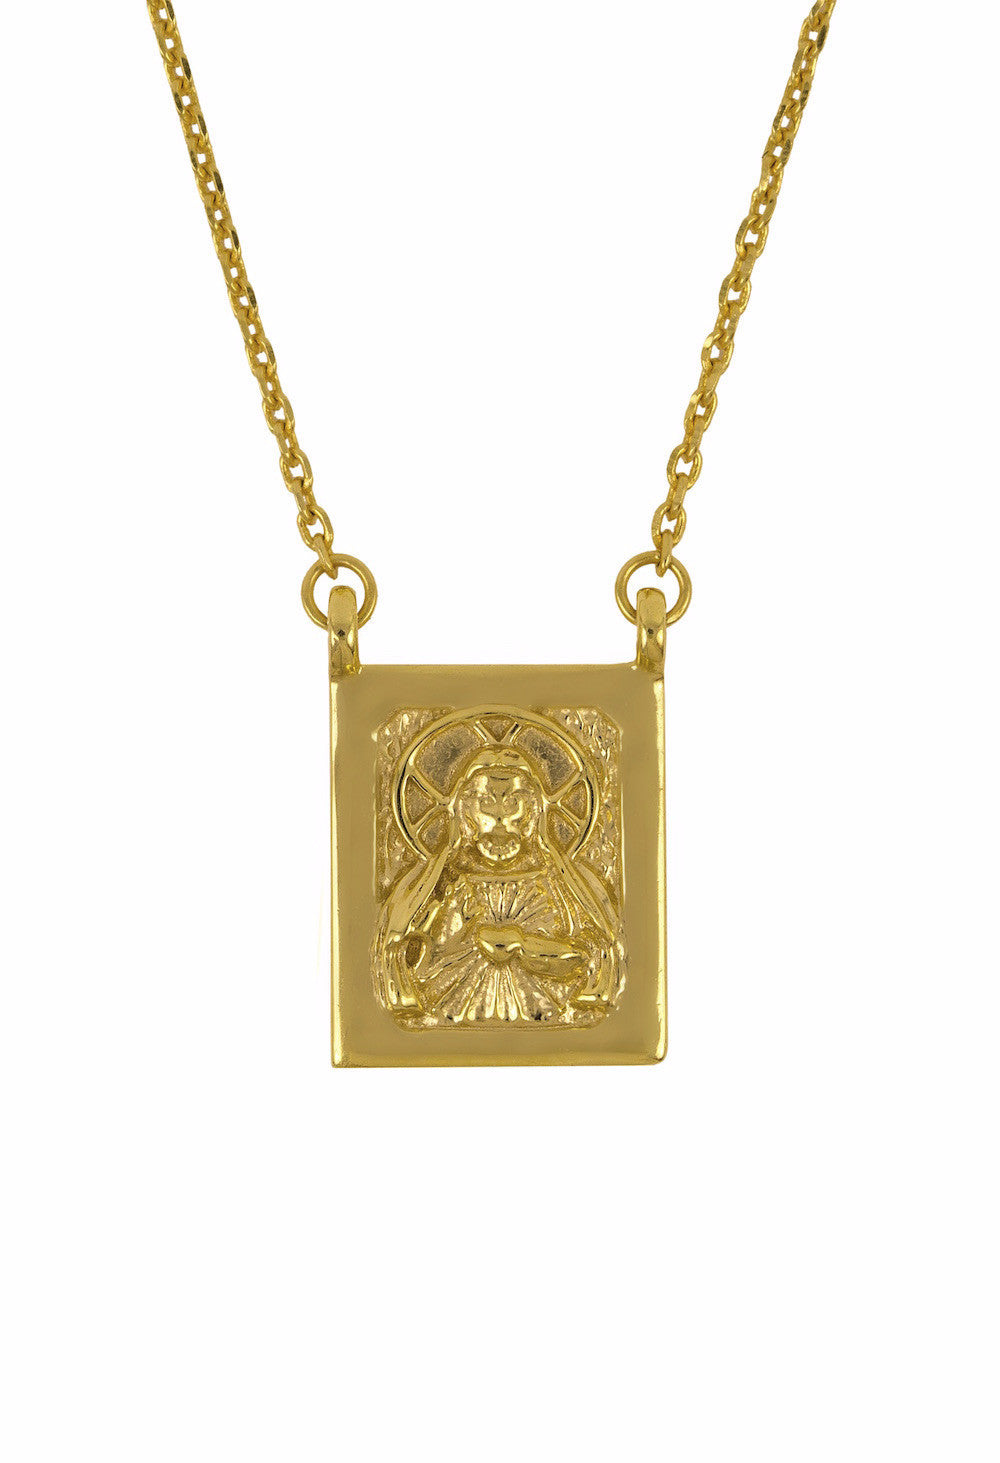 Design Jesus Mother Mary Double Pendant Guardian Scapular Gold Plated Necklace Yellow Religious Jewelry Present From Barcelona Protecting Talisman Escapulario Gay For Man Unisex 2